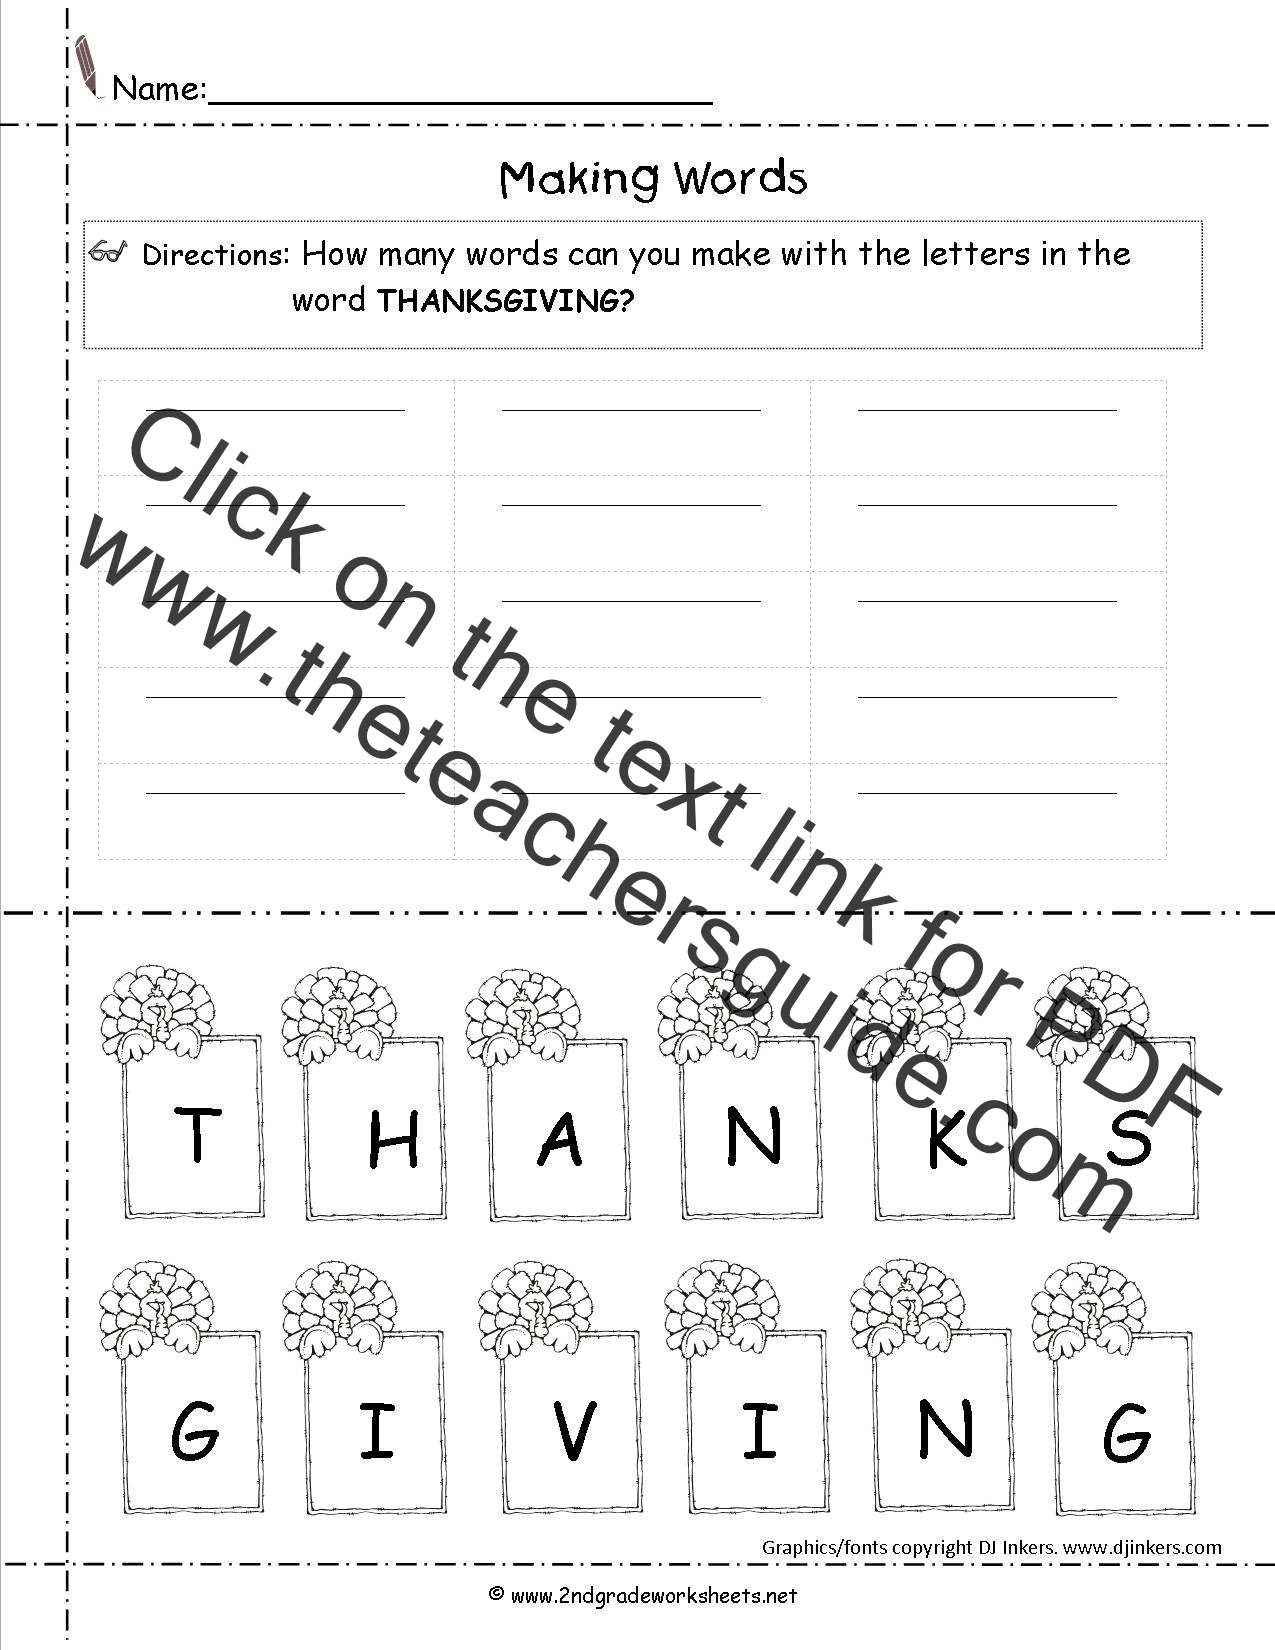 image relating to Thanksgiving Puzzles Printable Free known as Thanksgiving Printouts and Worksheets